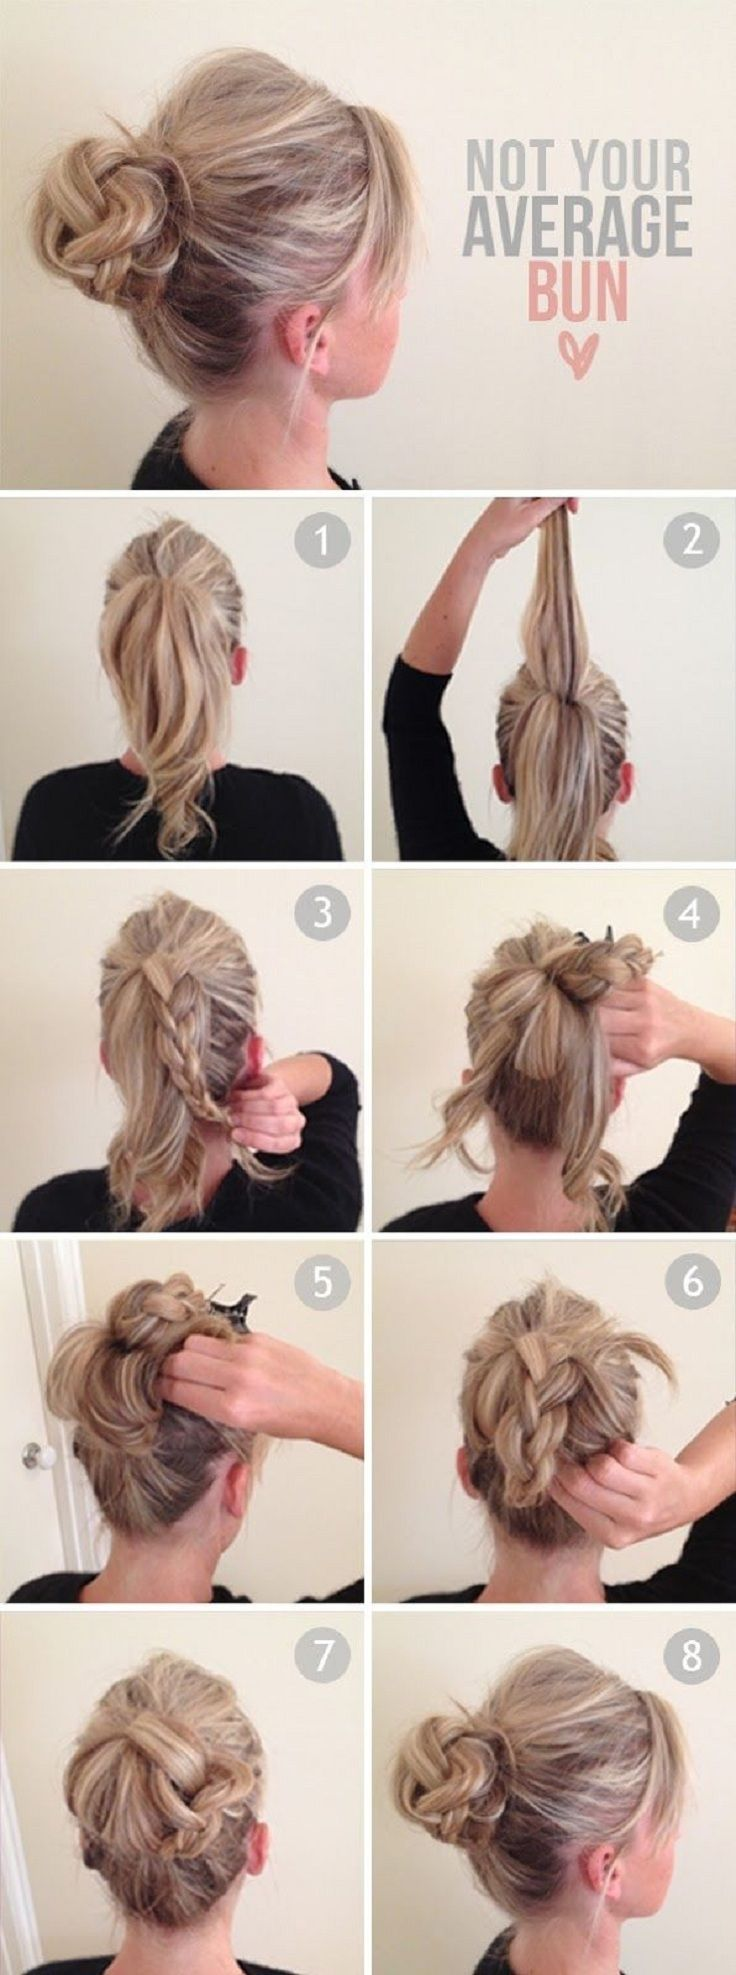 14 amazing double braid bun hairstyles - pretty designs